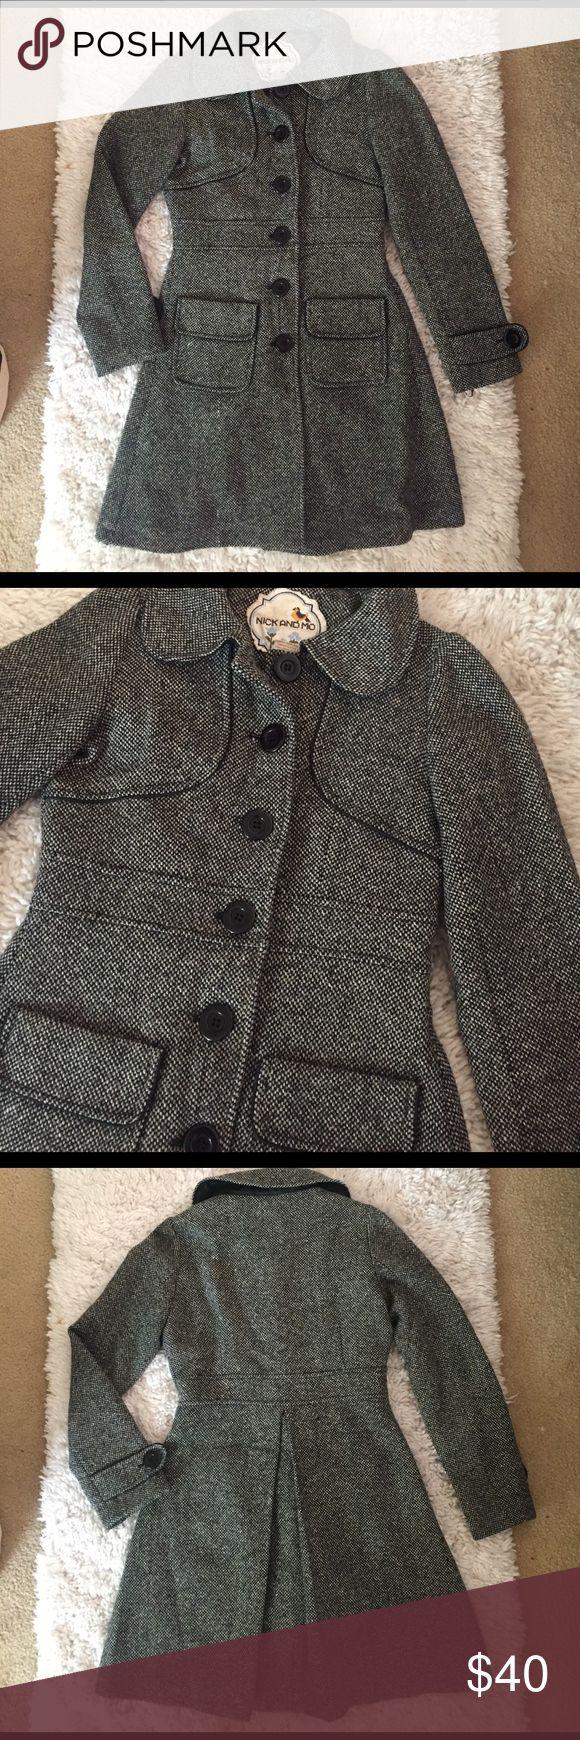 Peacoat size small Wool peacoat size small, great quality, no defects or tares. Jackets & Coats Pea Coats